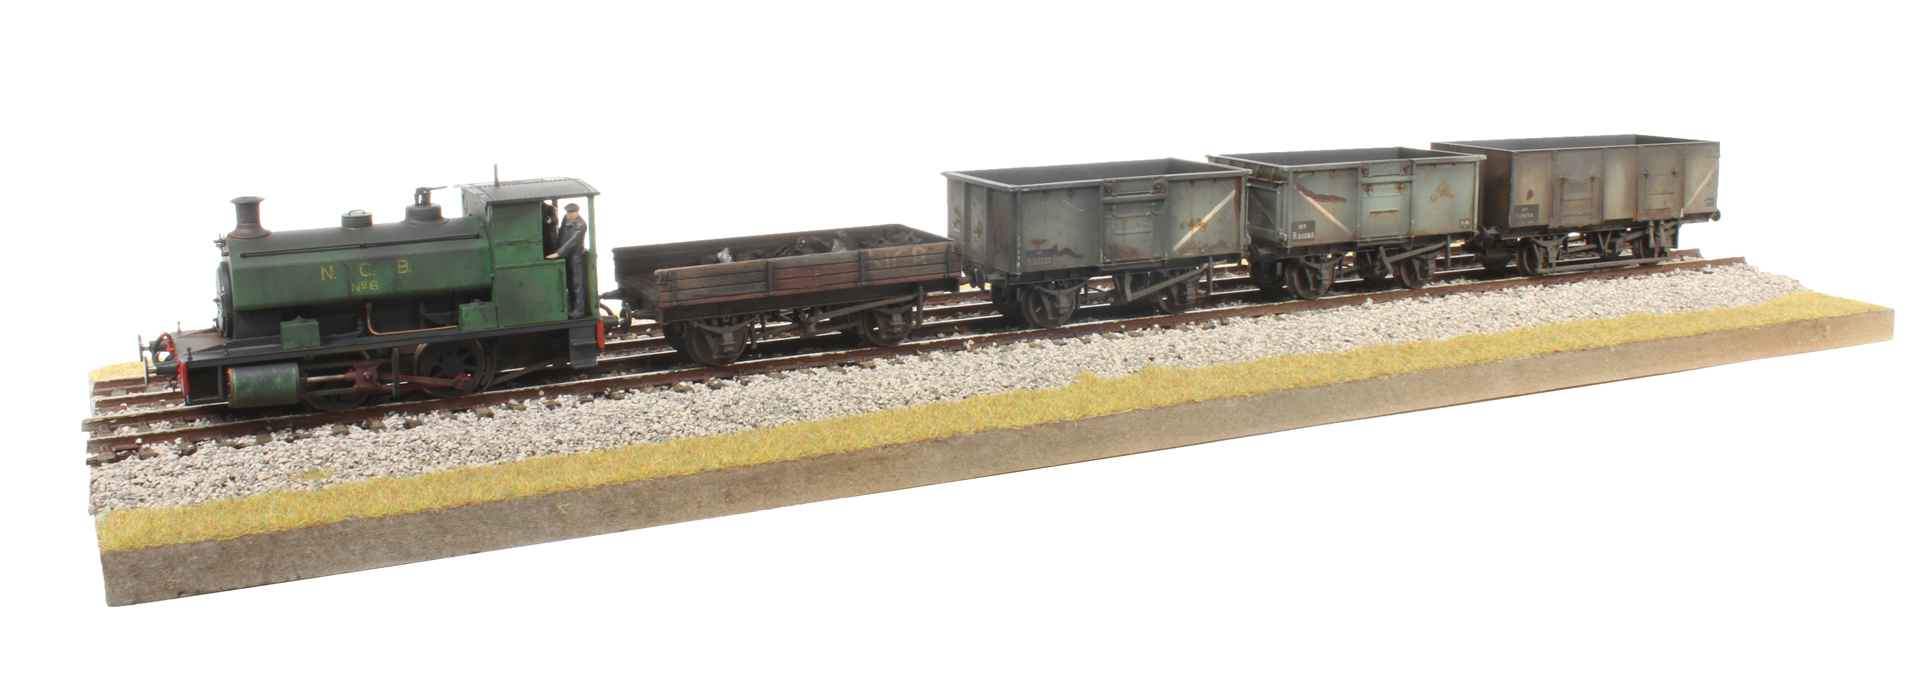 Hattons Originals OO Andrew Barclay 0-4-0ST - Available Now